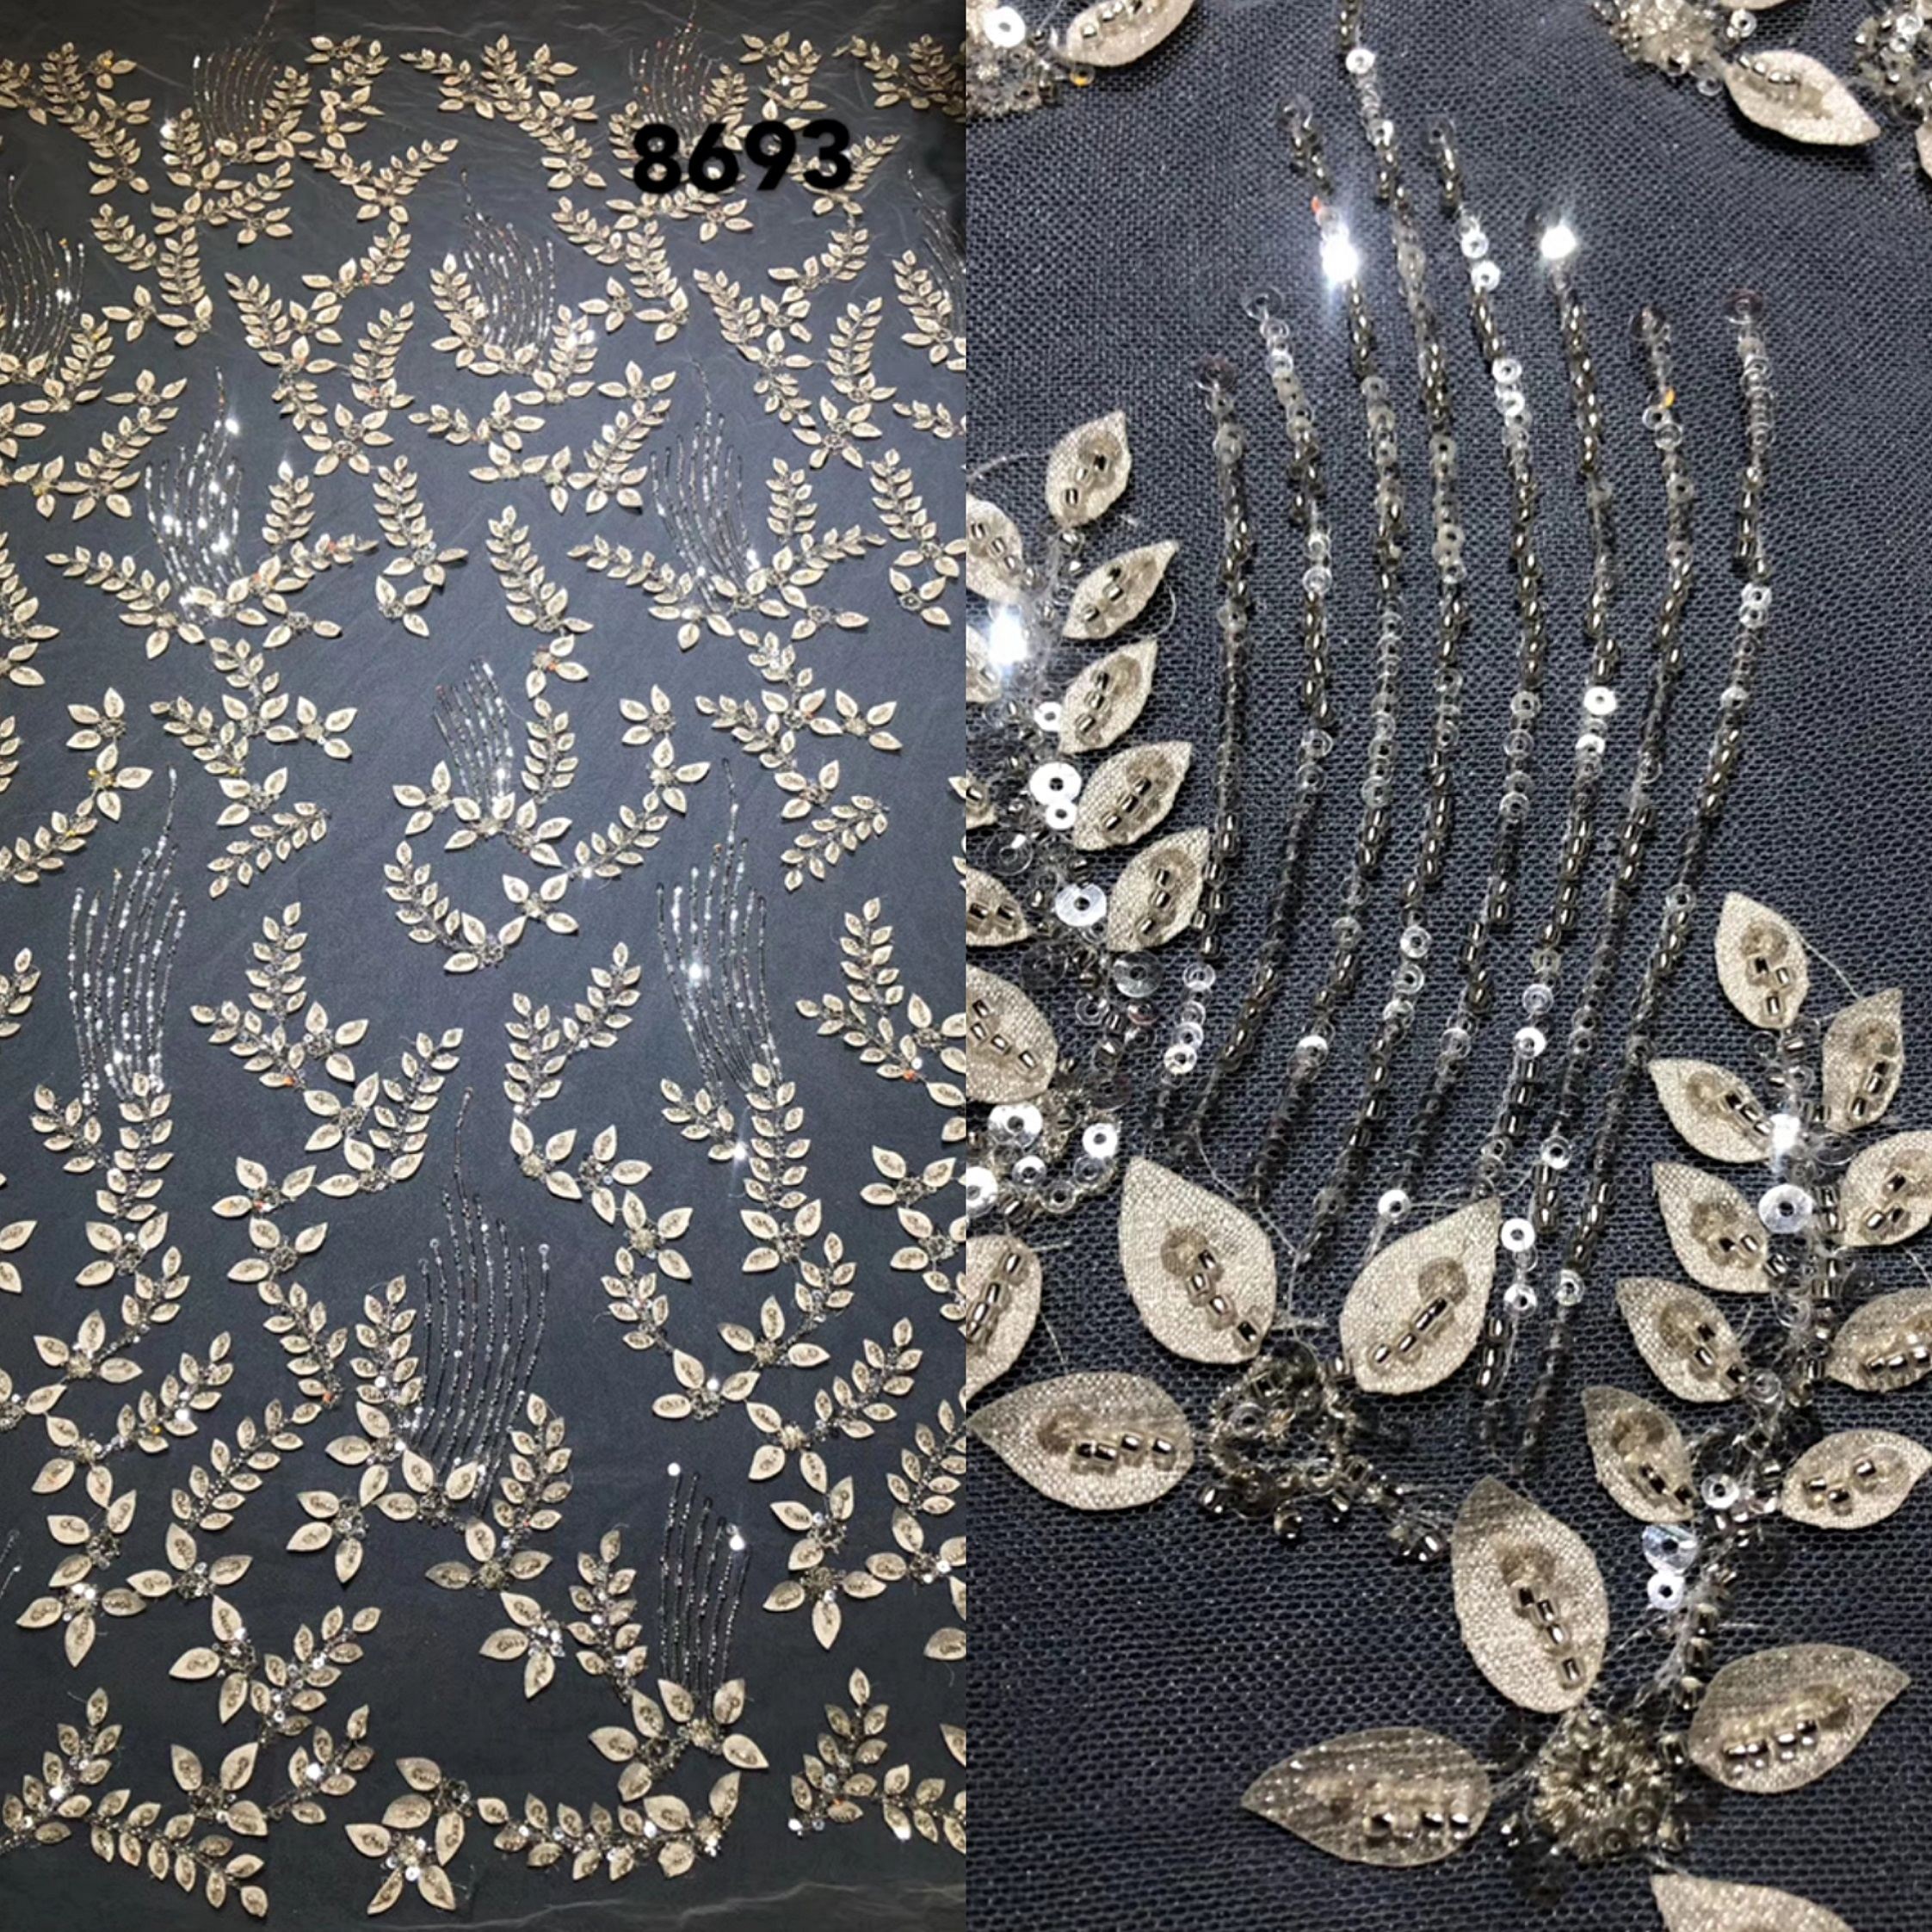 1 yd fabric silver sequin embroidered bridal african lace glitter wedding 3d